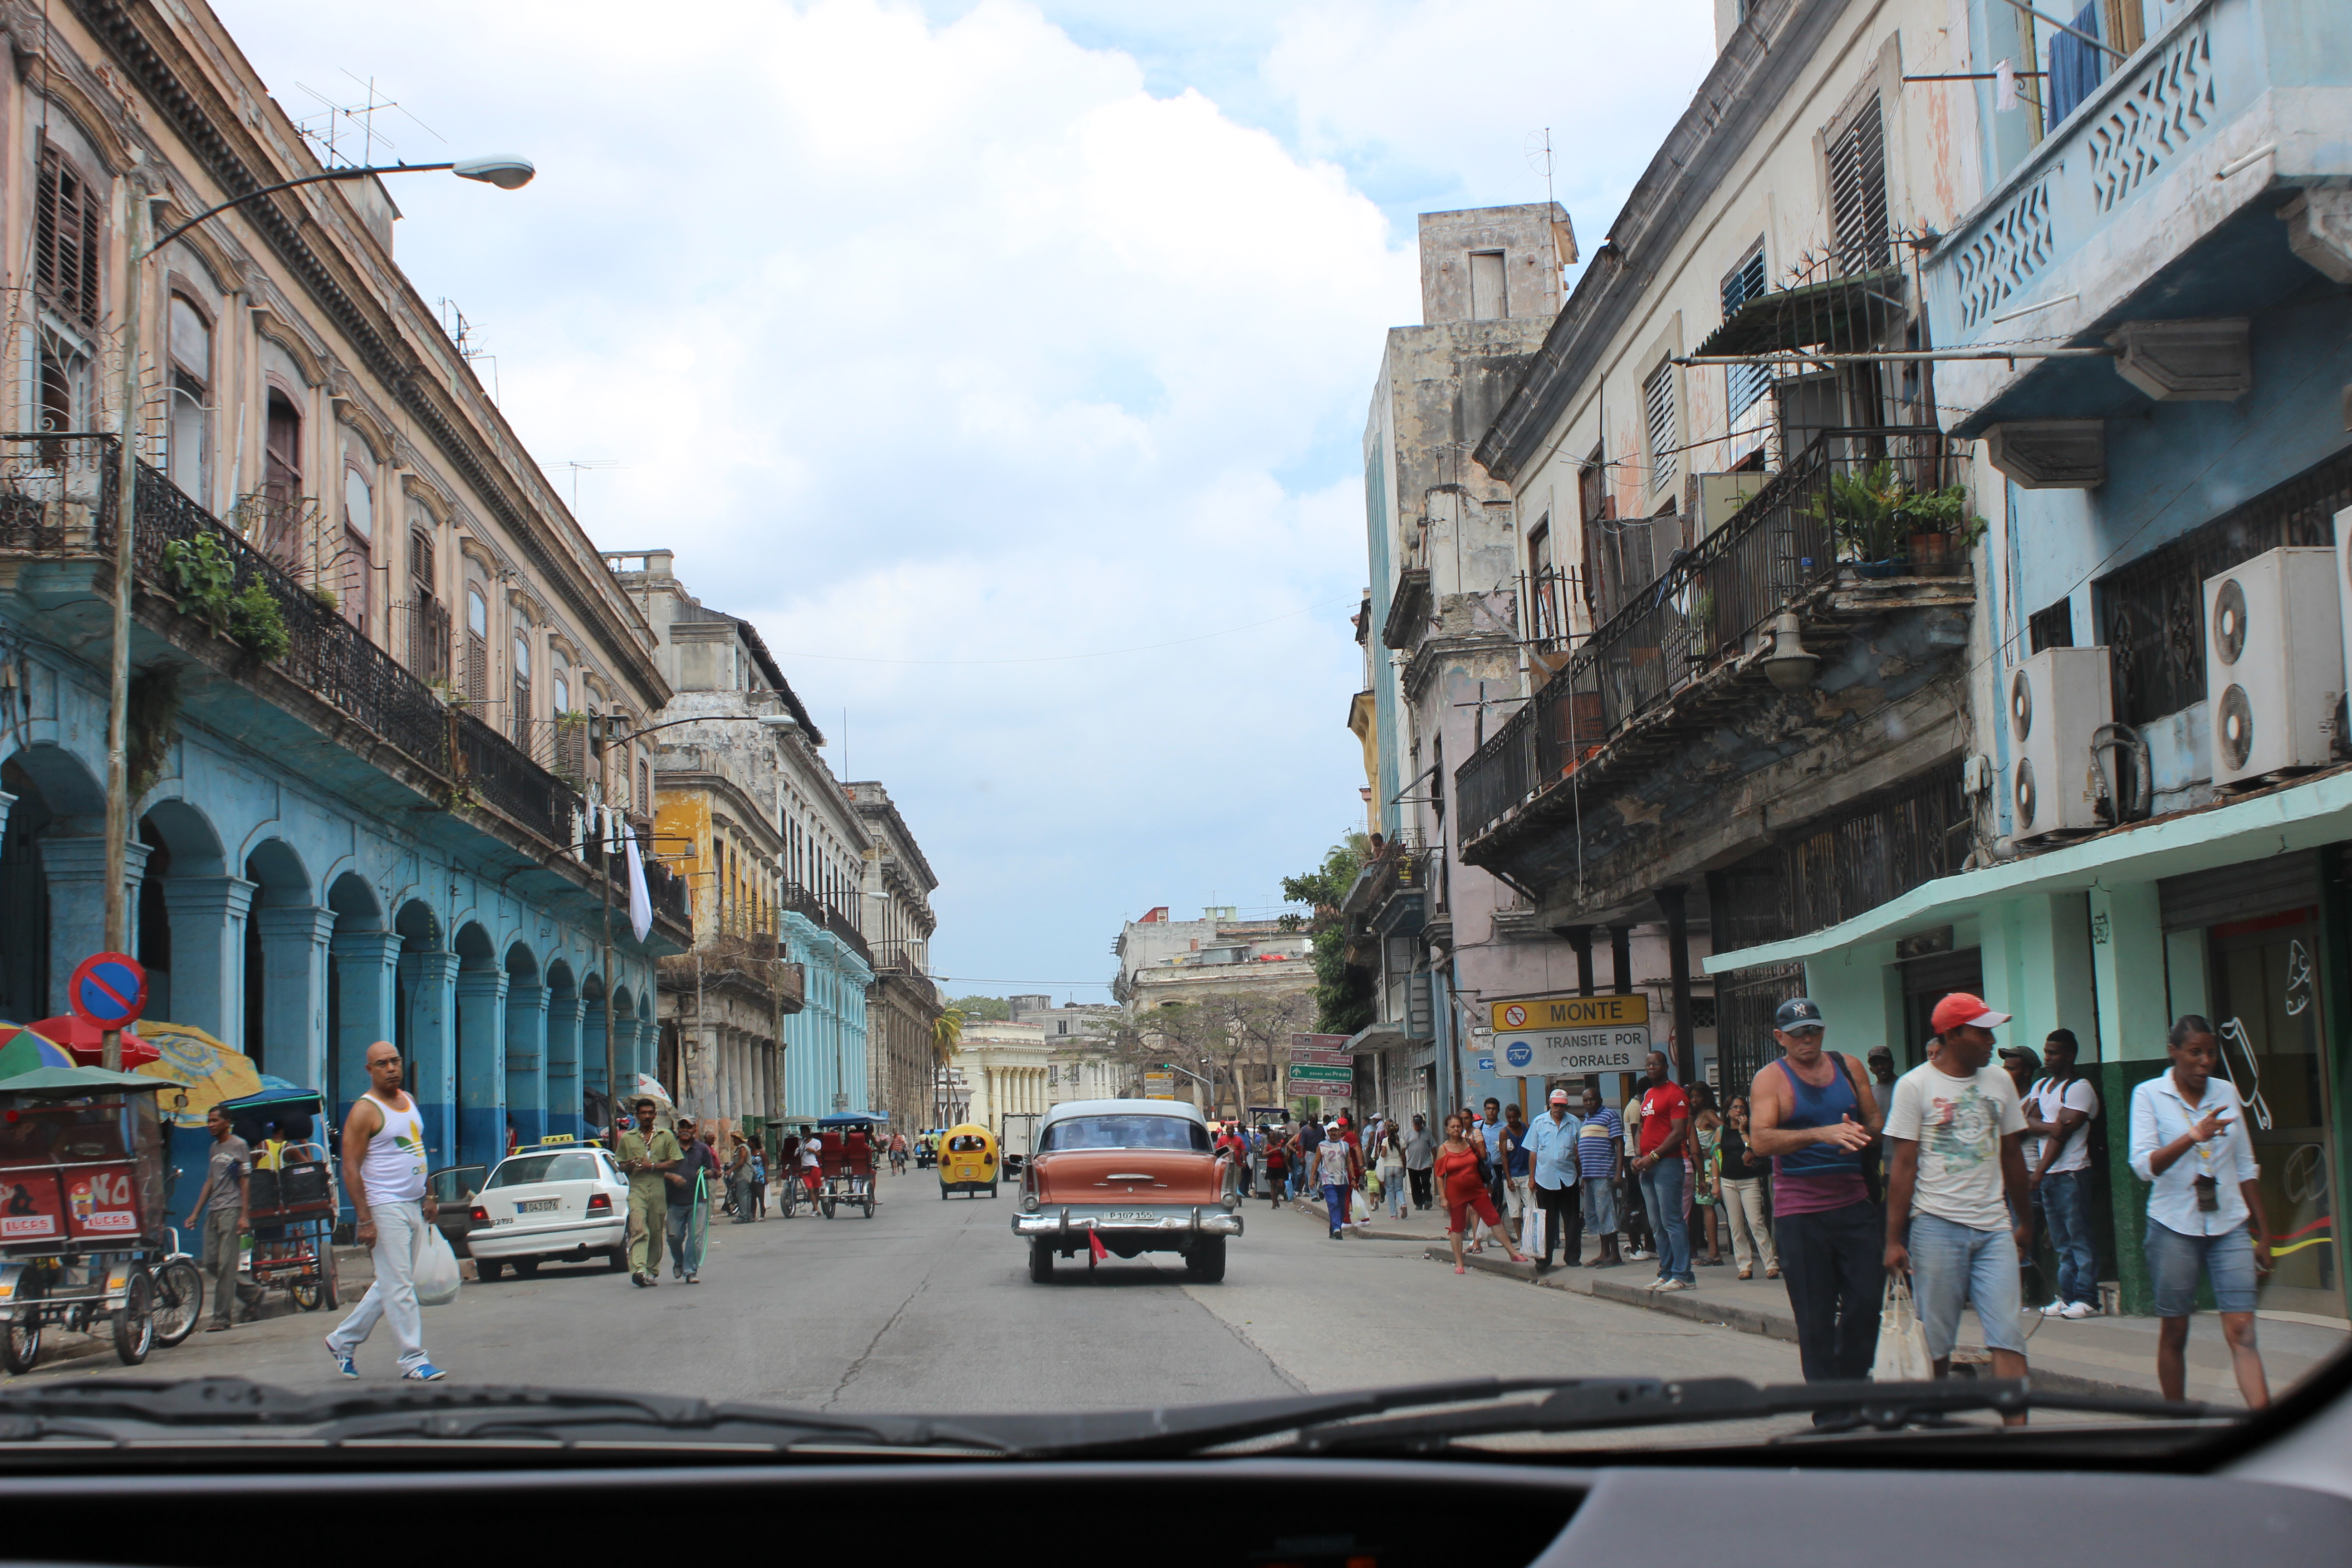 Street view of Old Havana from Ed's Prius